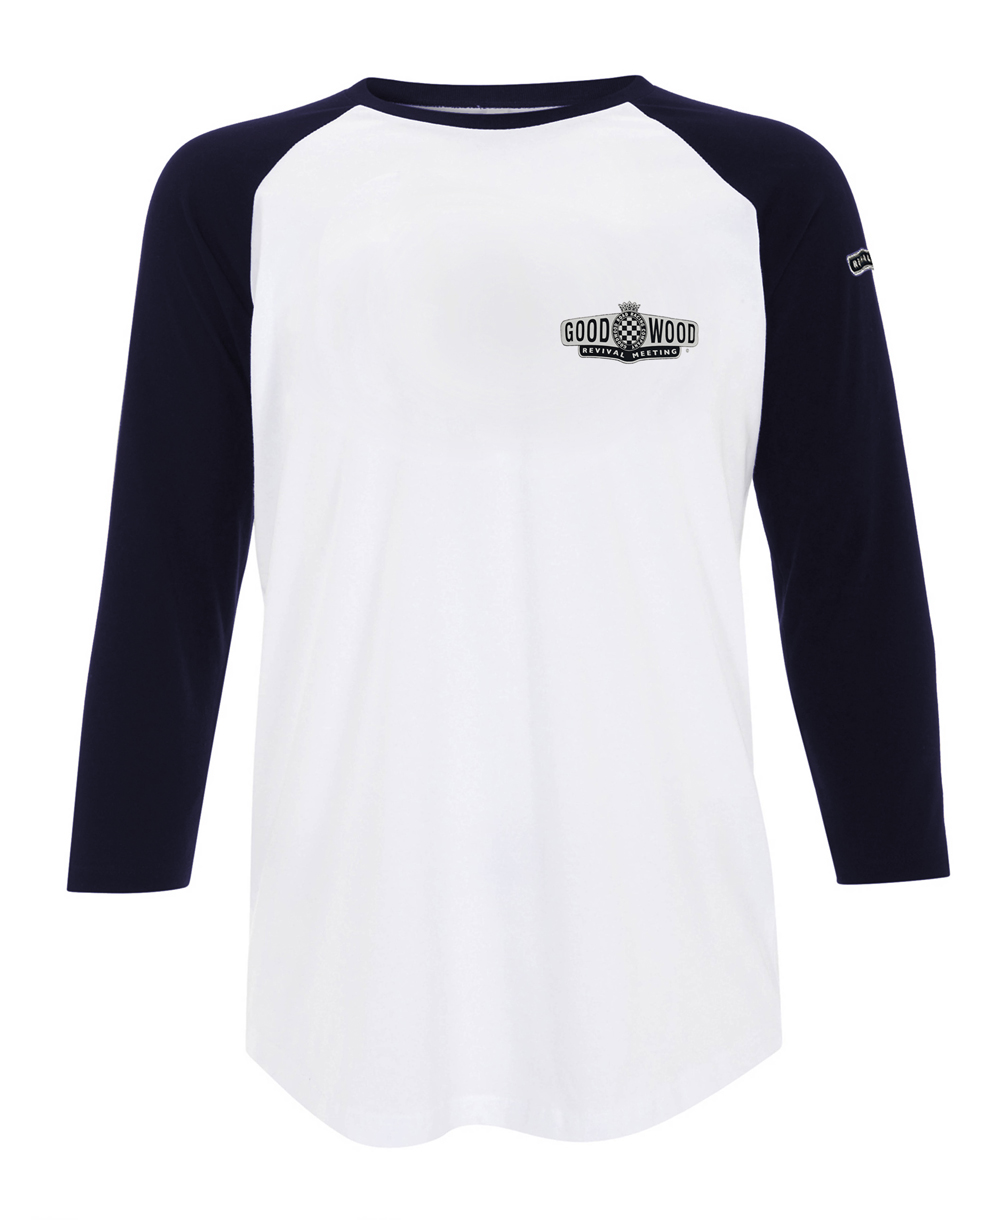 Ladies Vintage White And Navy Revival Baseball T Shirt By